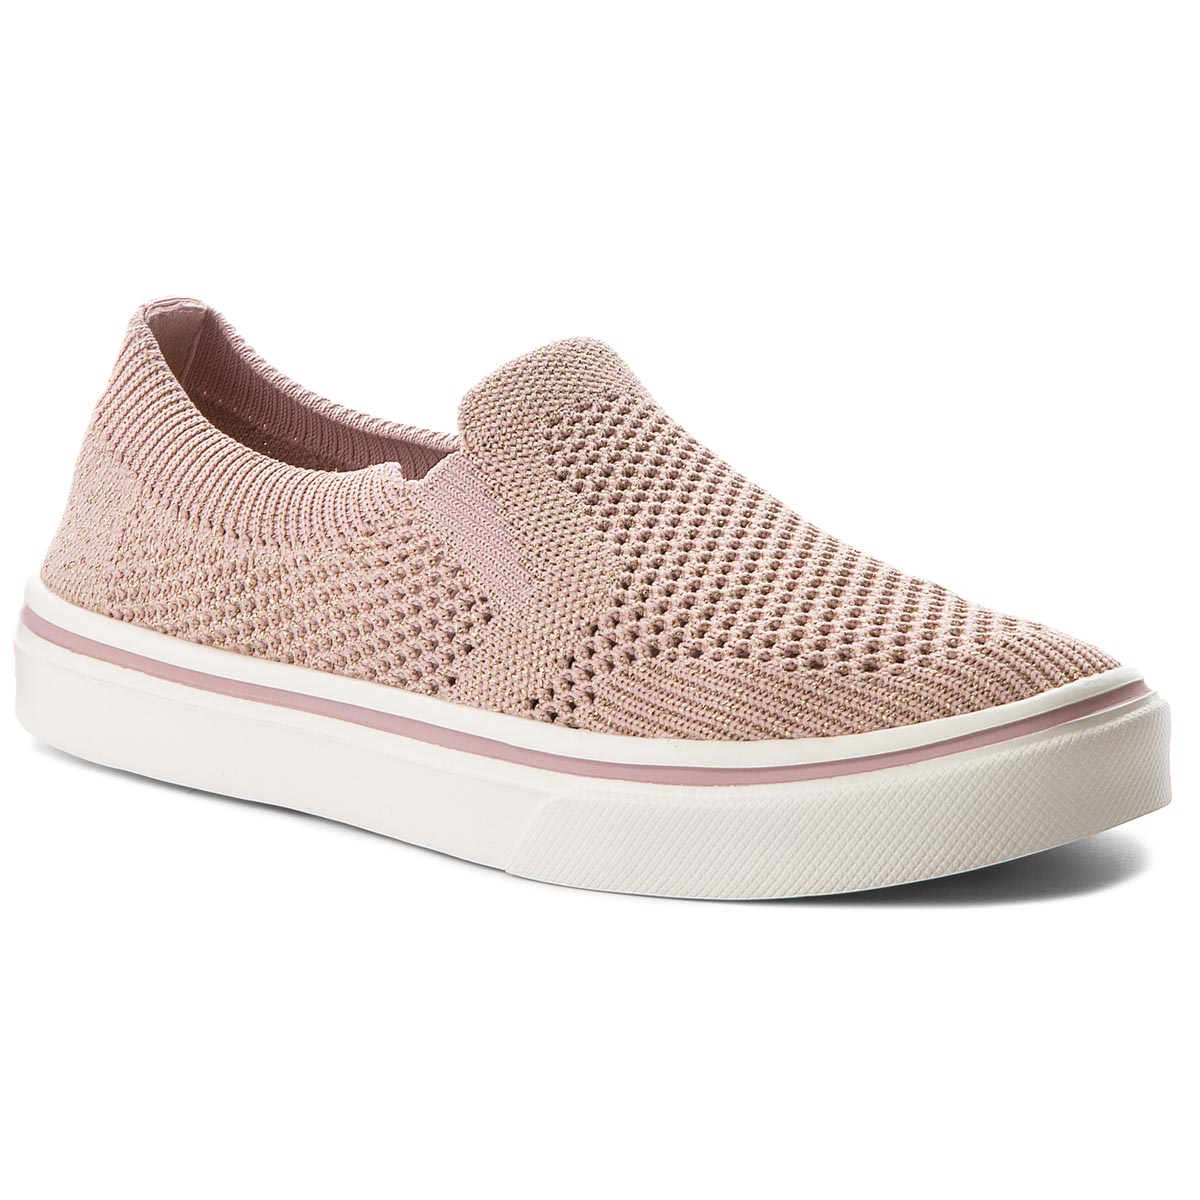 ... TOMMY HILFIGER - Knitted Light Weight Slip On FW0FW03361 Dusty Rose 502.  -31%. Tenisky ... 5147bbabece